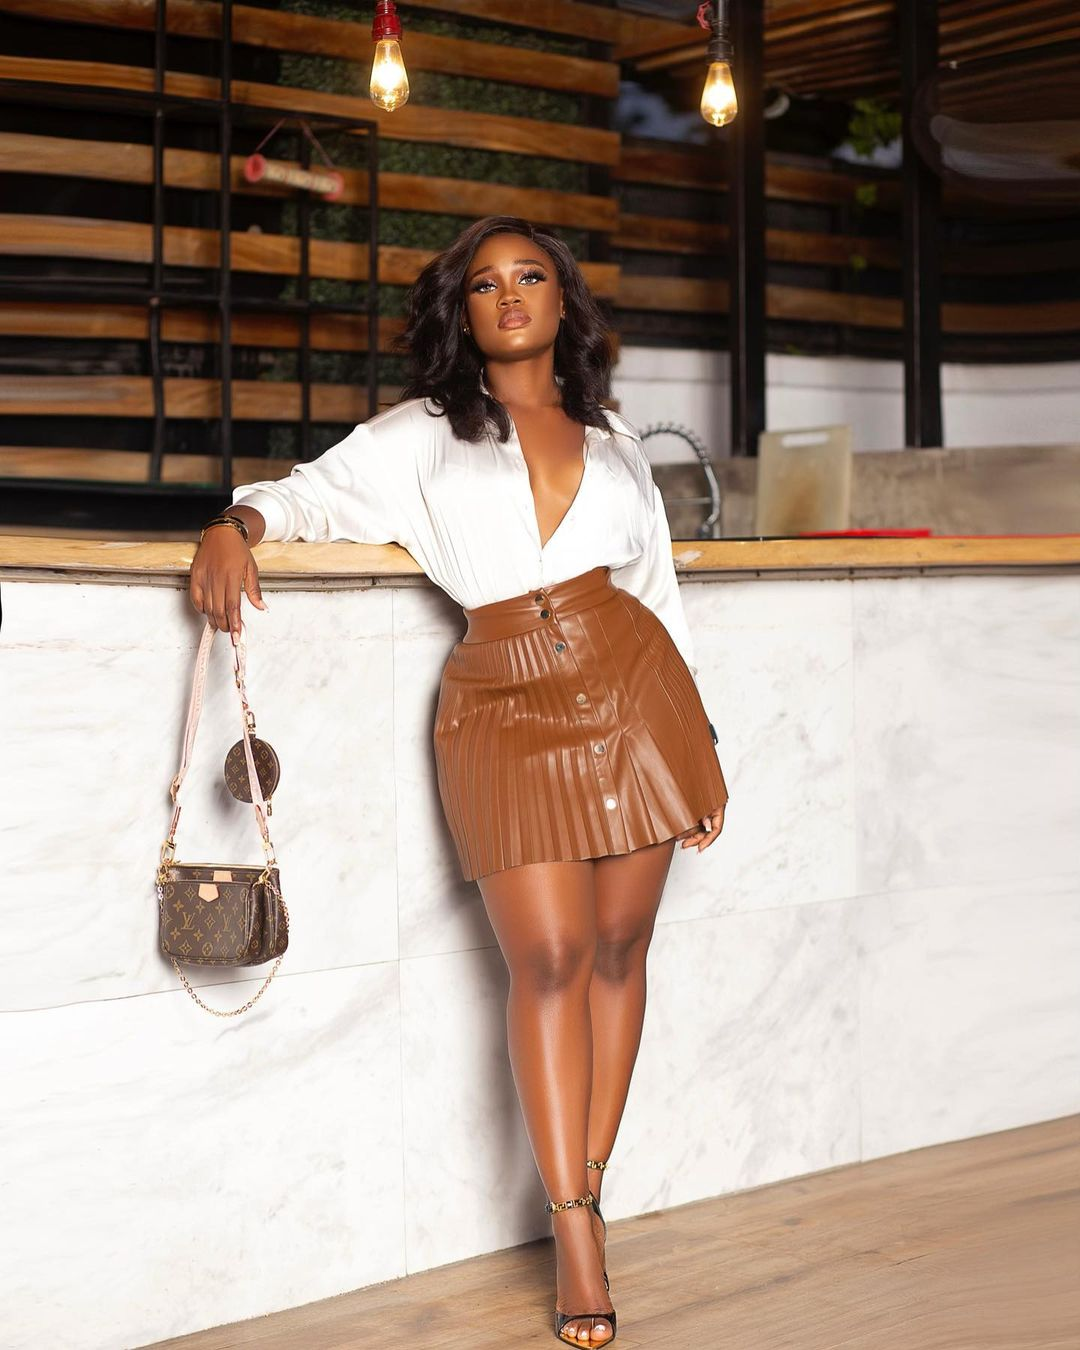 Cynthia Nwadiora Stylish Outfit Is Definitely One To Stand Out